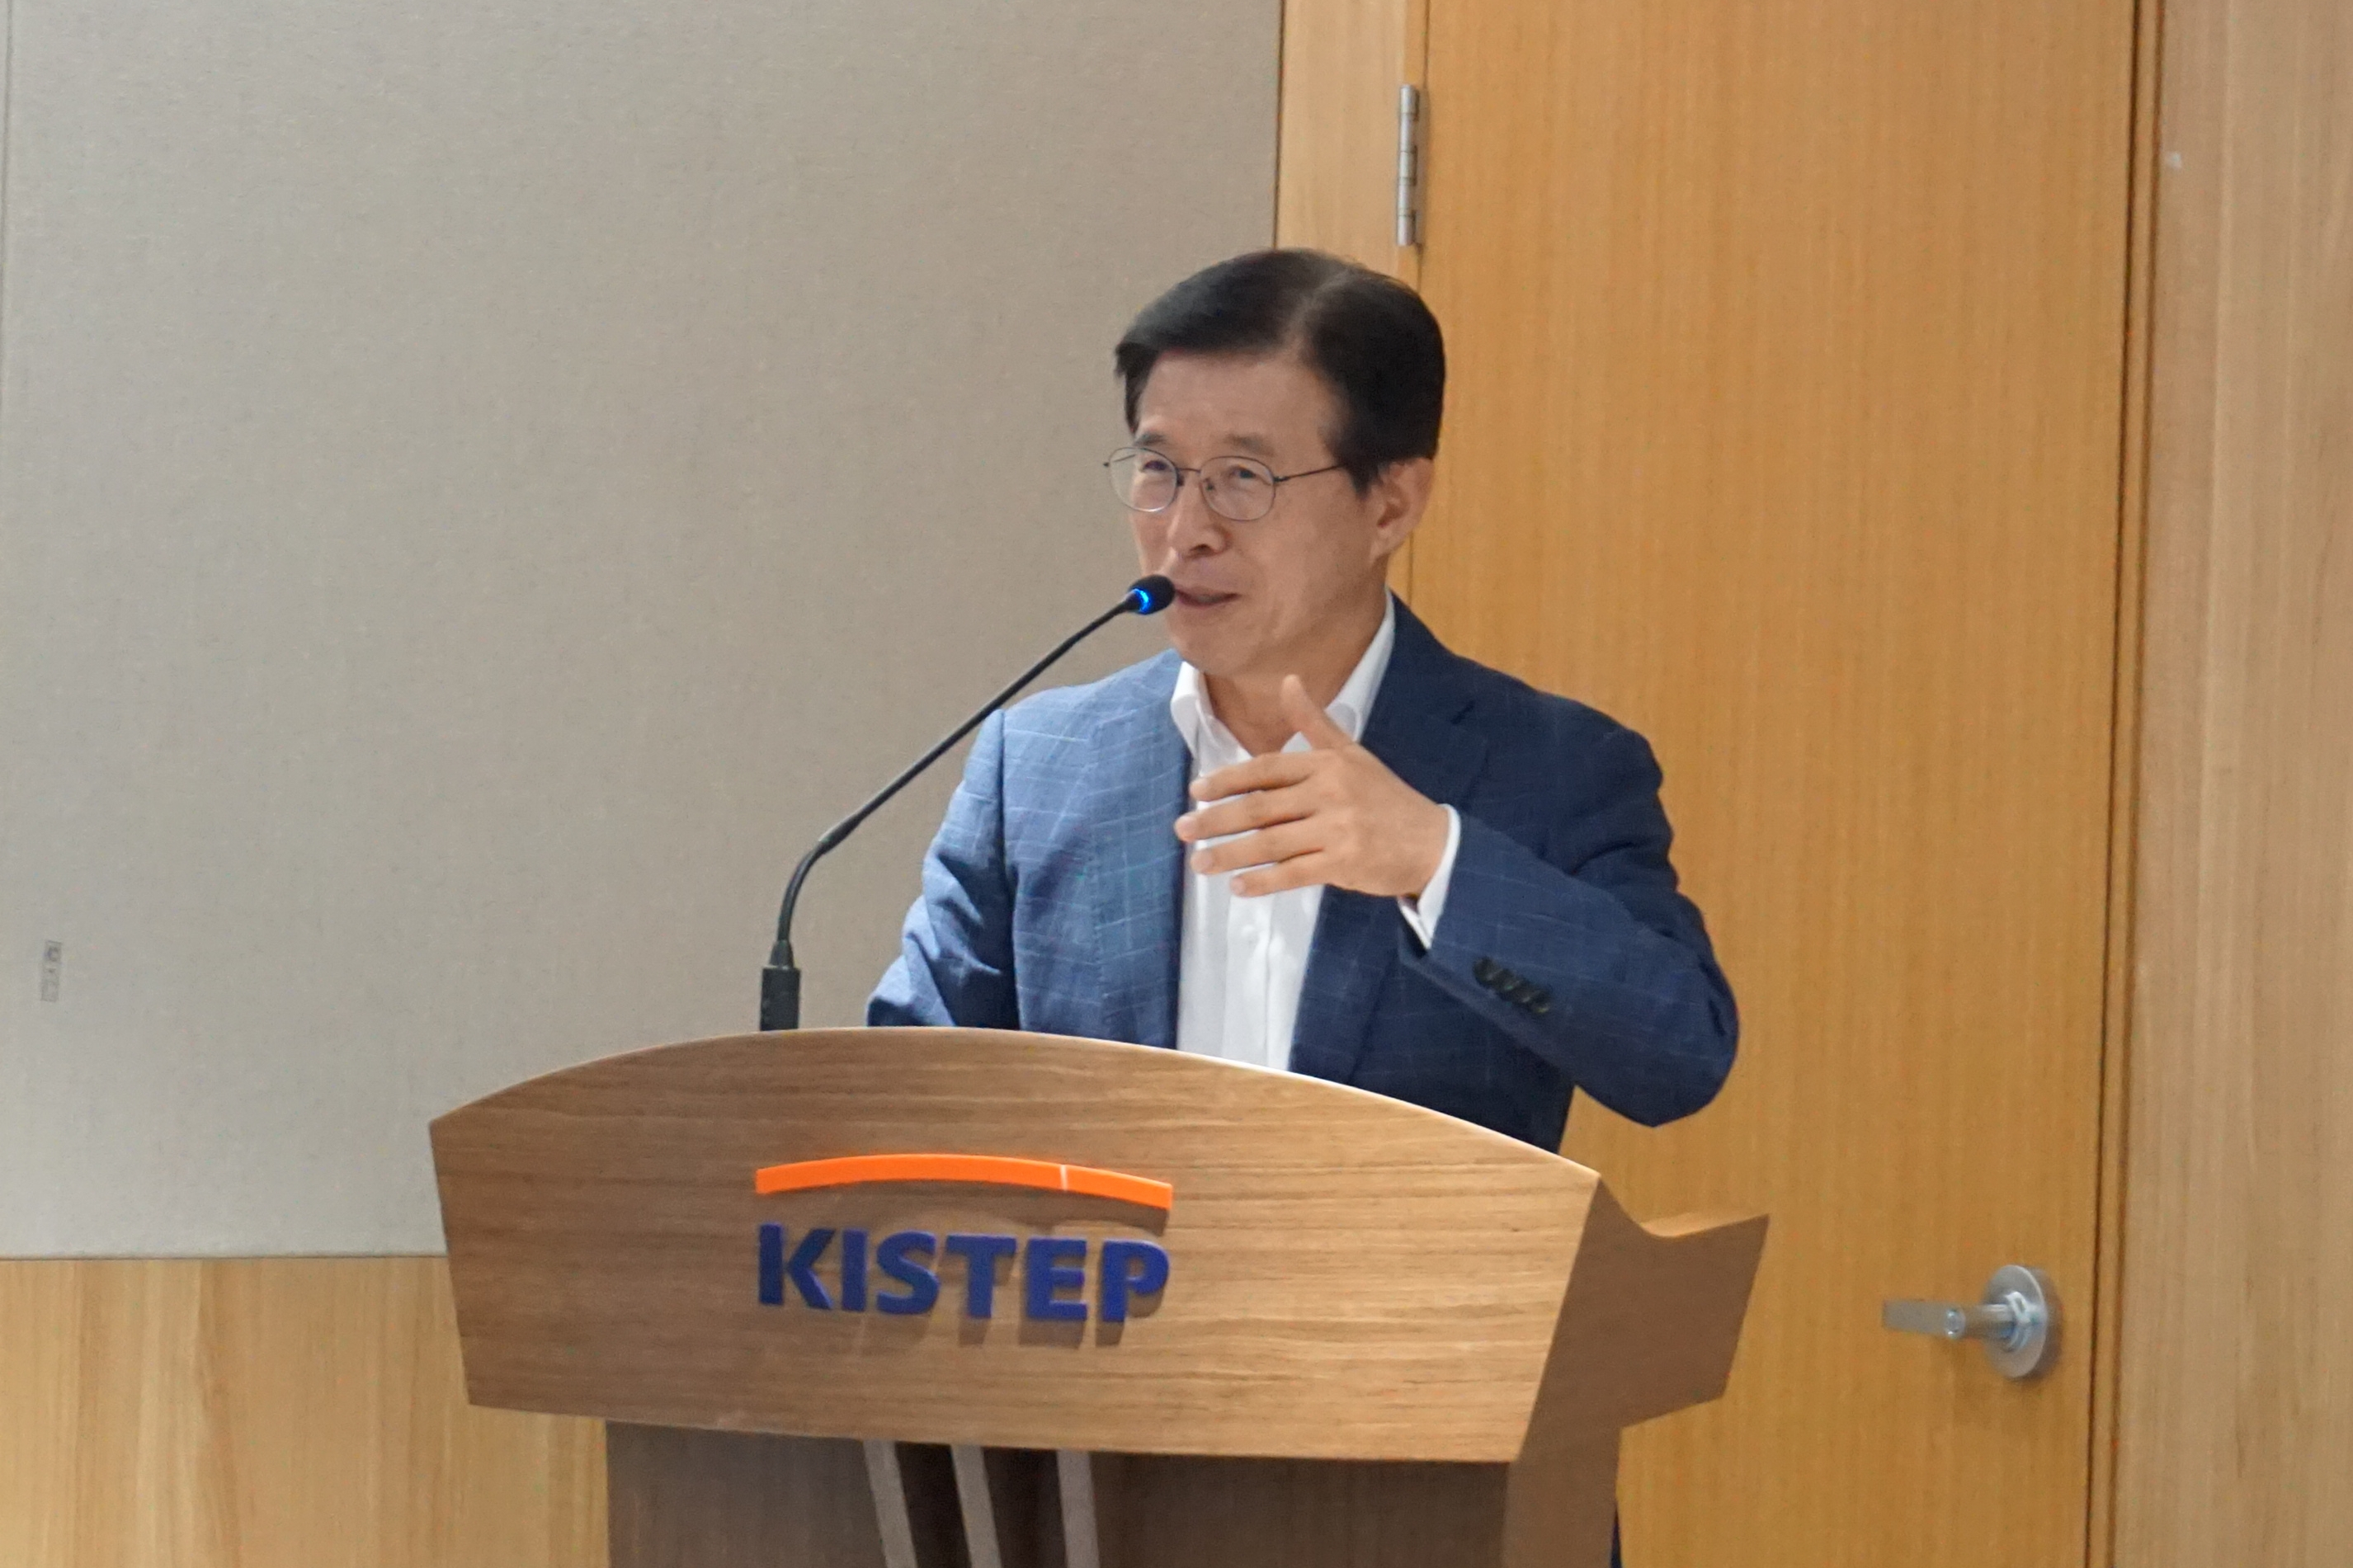 [The 125th KISTEP Wednesday Forum] The Future of Agriculture with Smart Farm Technology